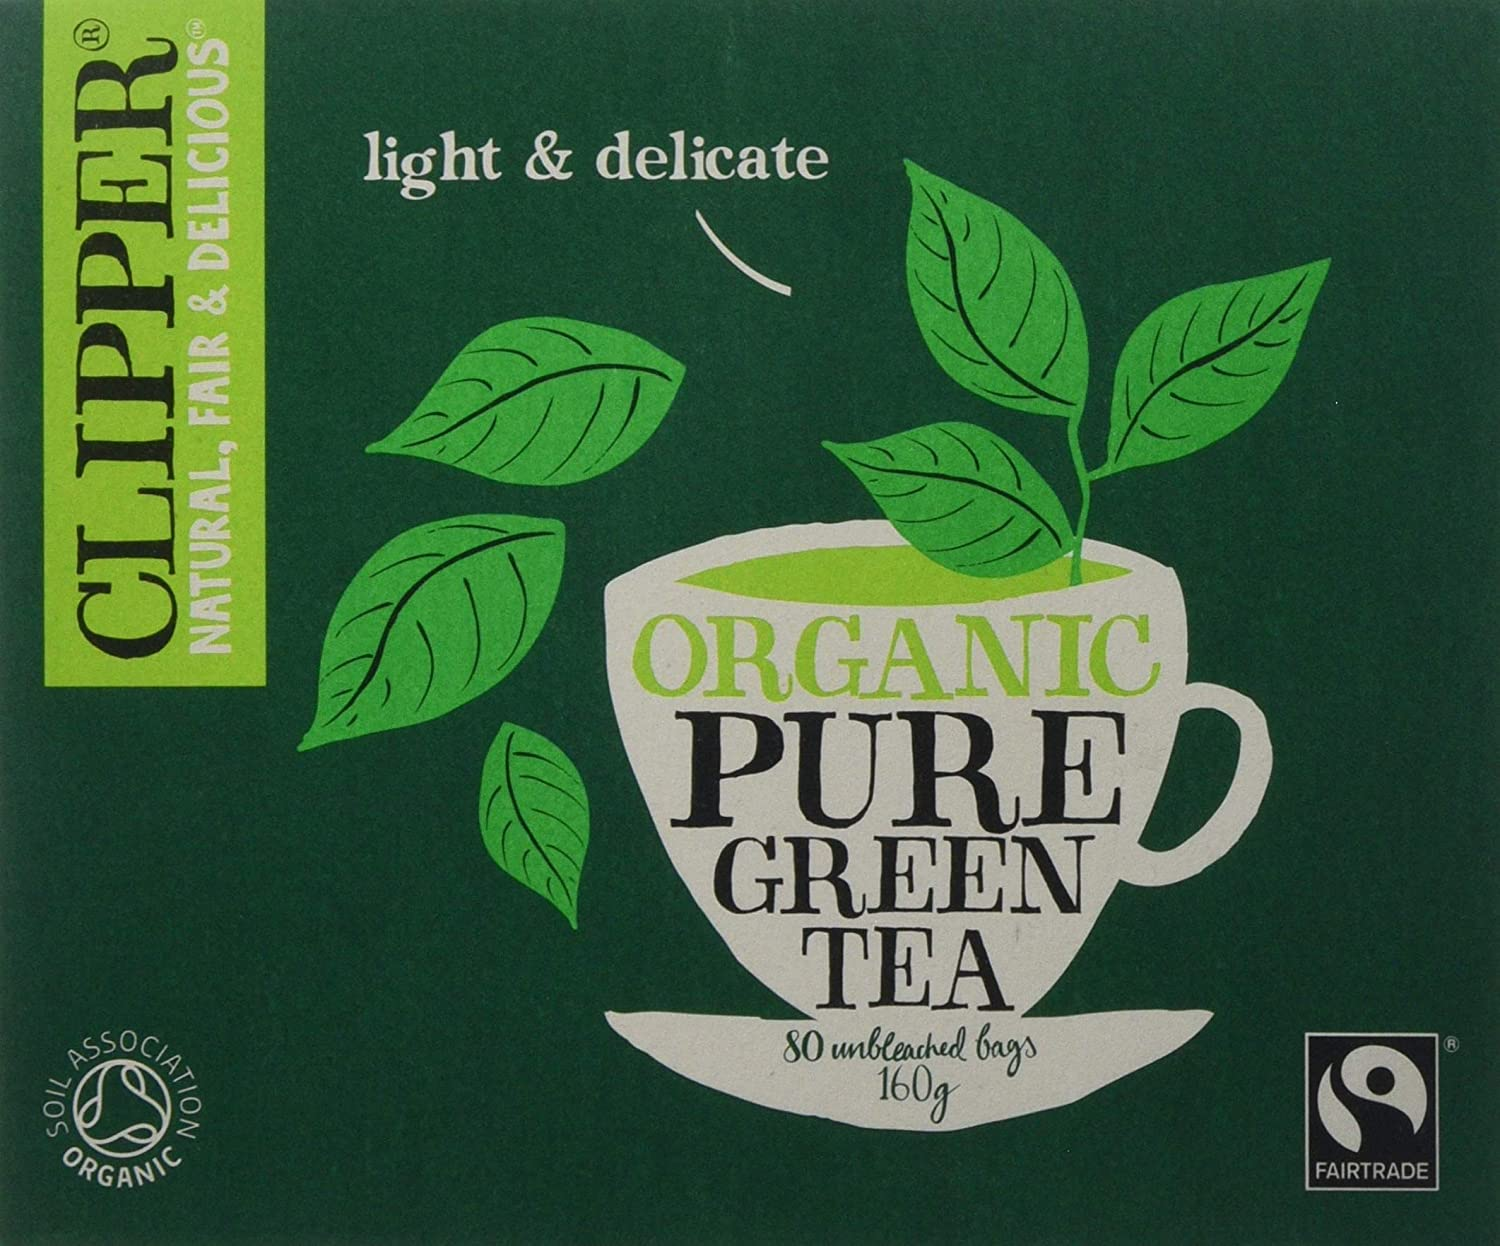 Clipper Organic Fairtrade Pure Green 80 Tea bags (Pack of 6, Total 480 Teabags)